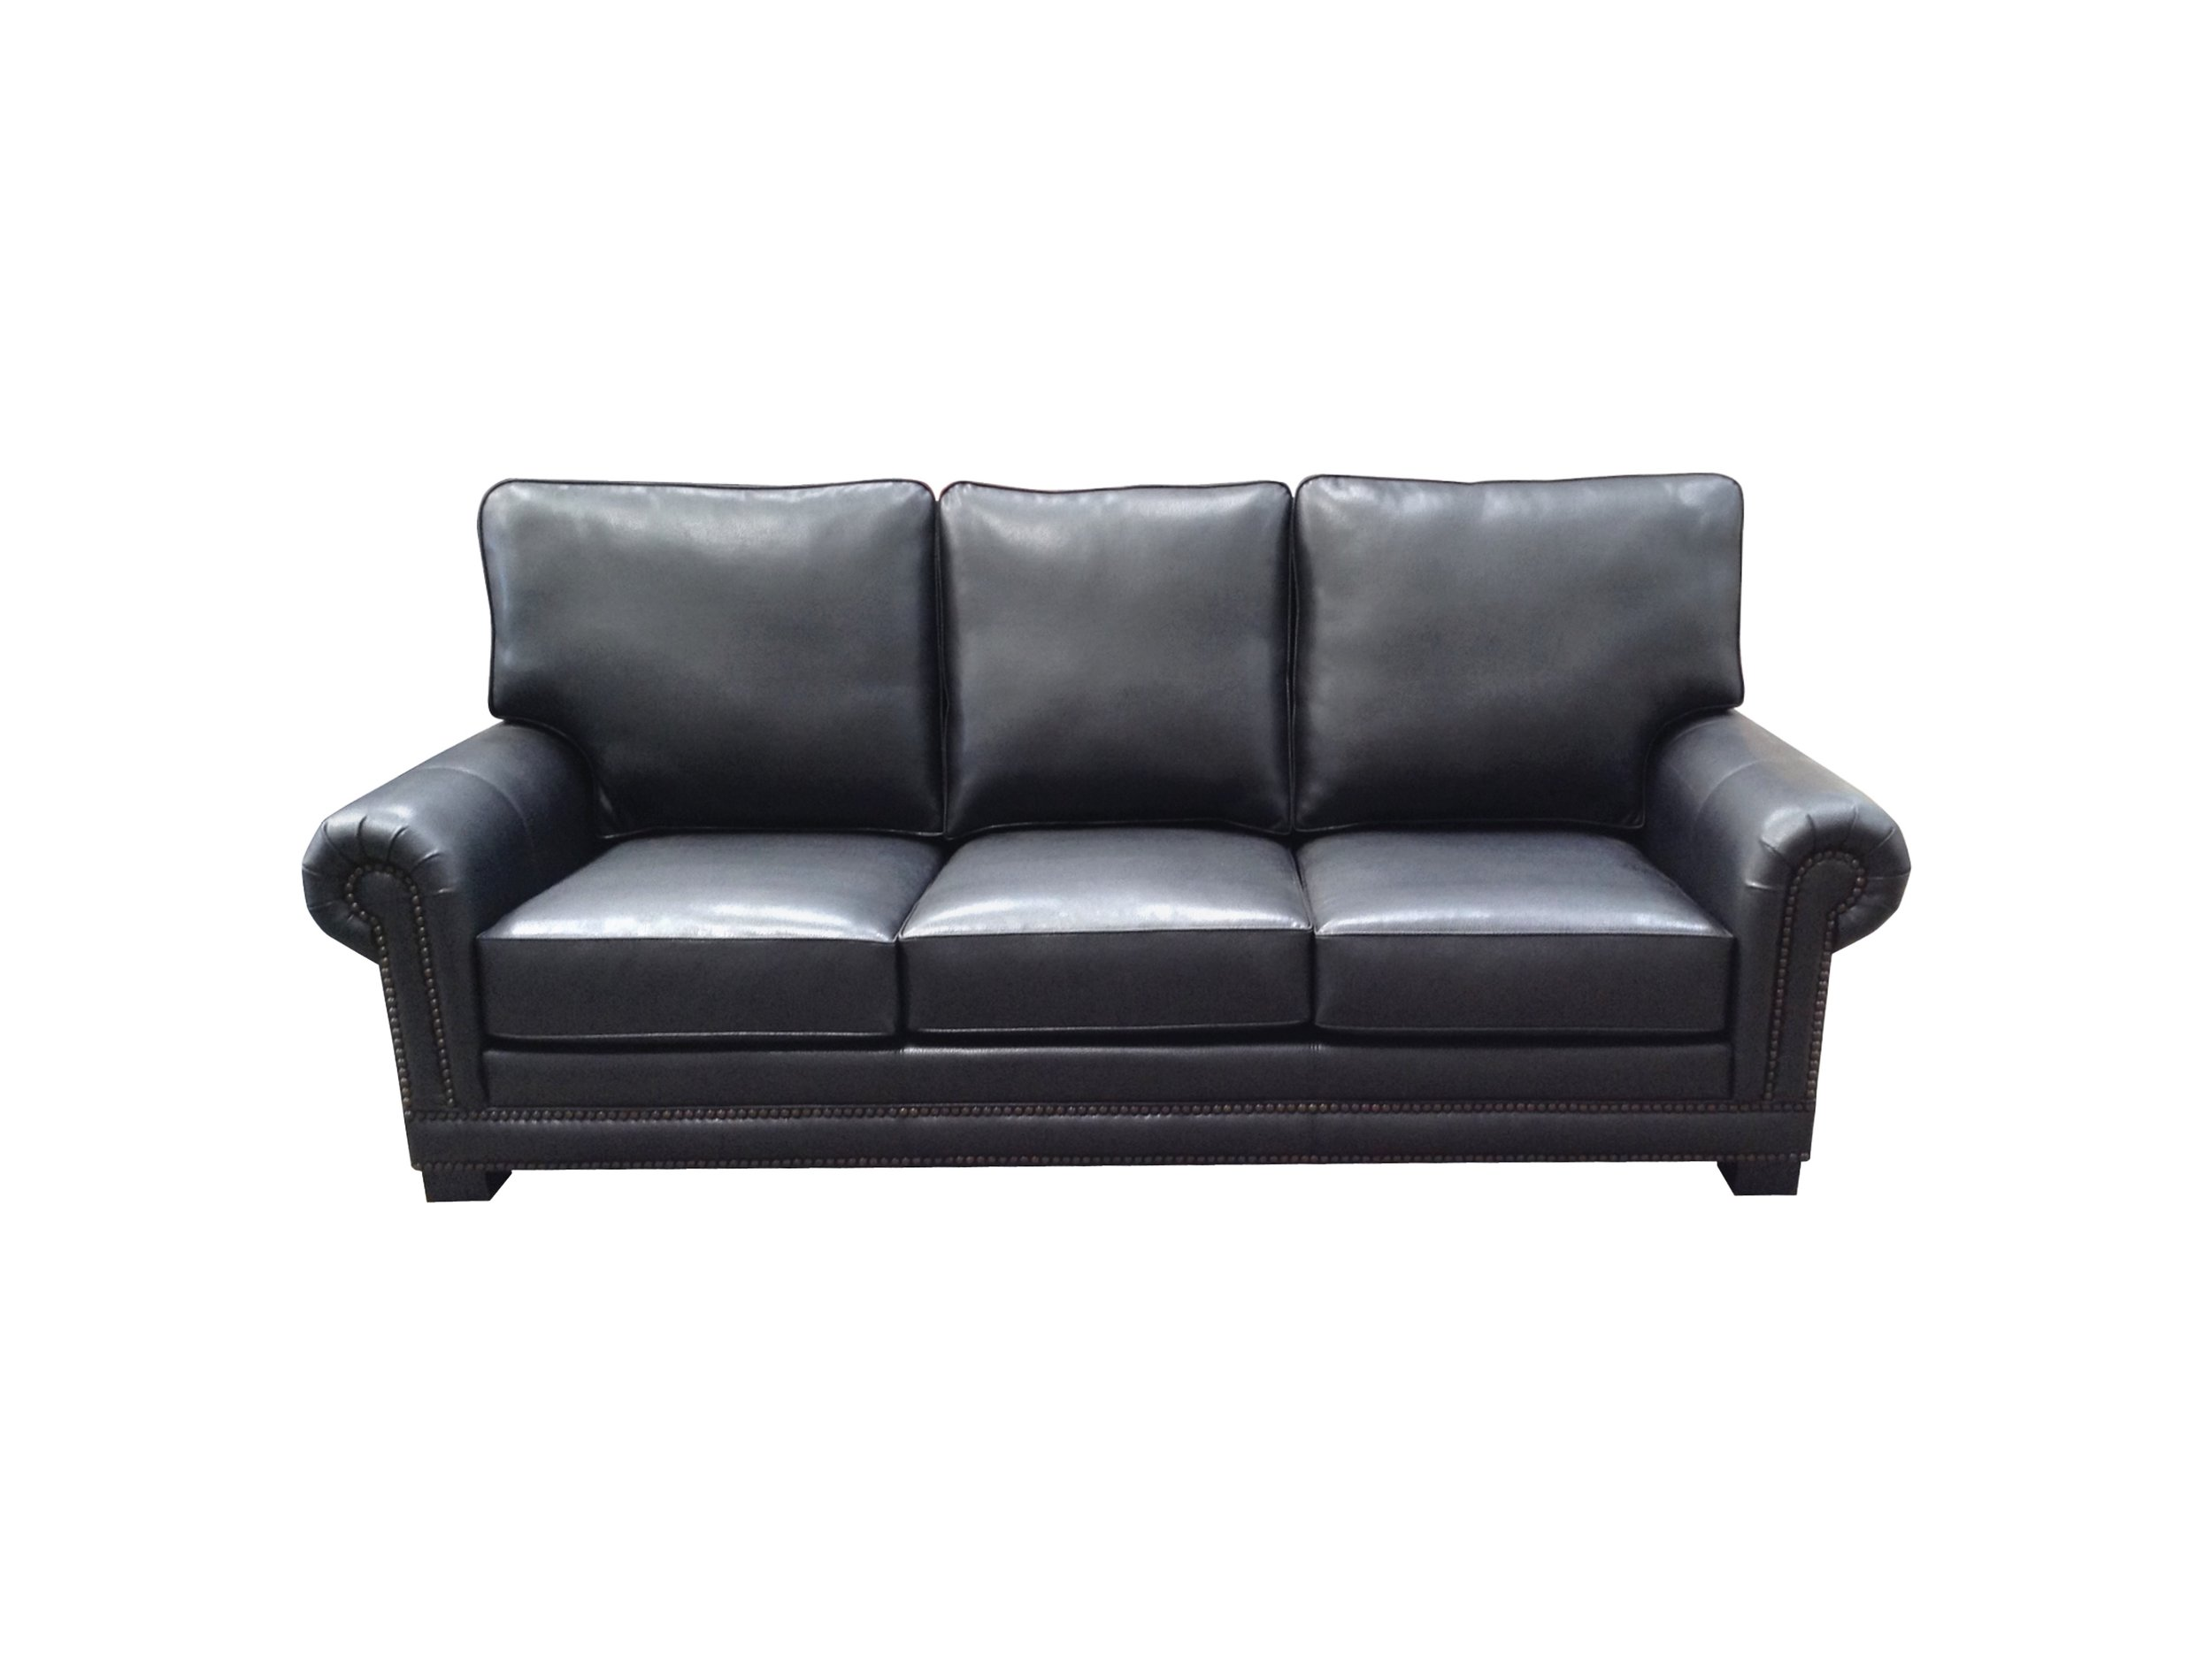 lexington_sofa_1.jpg